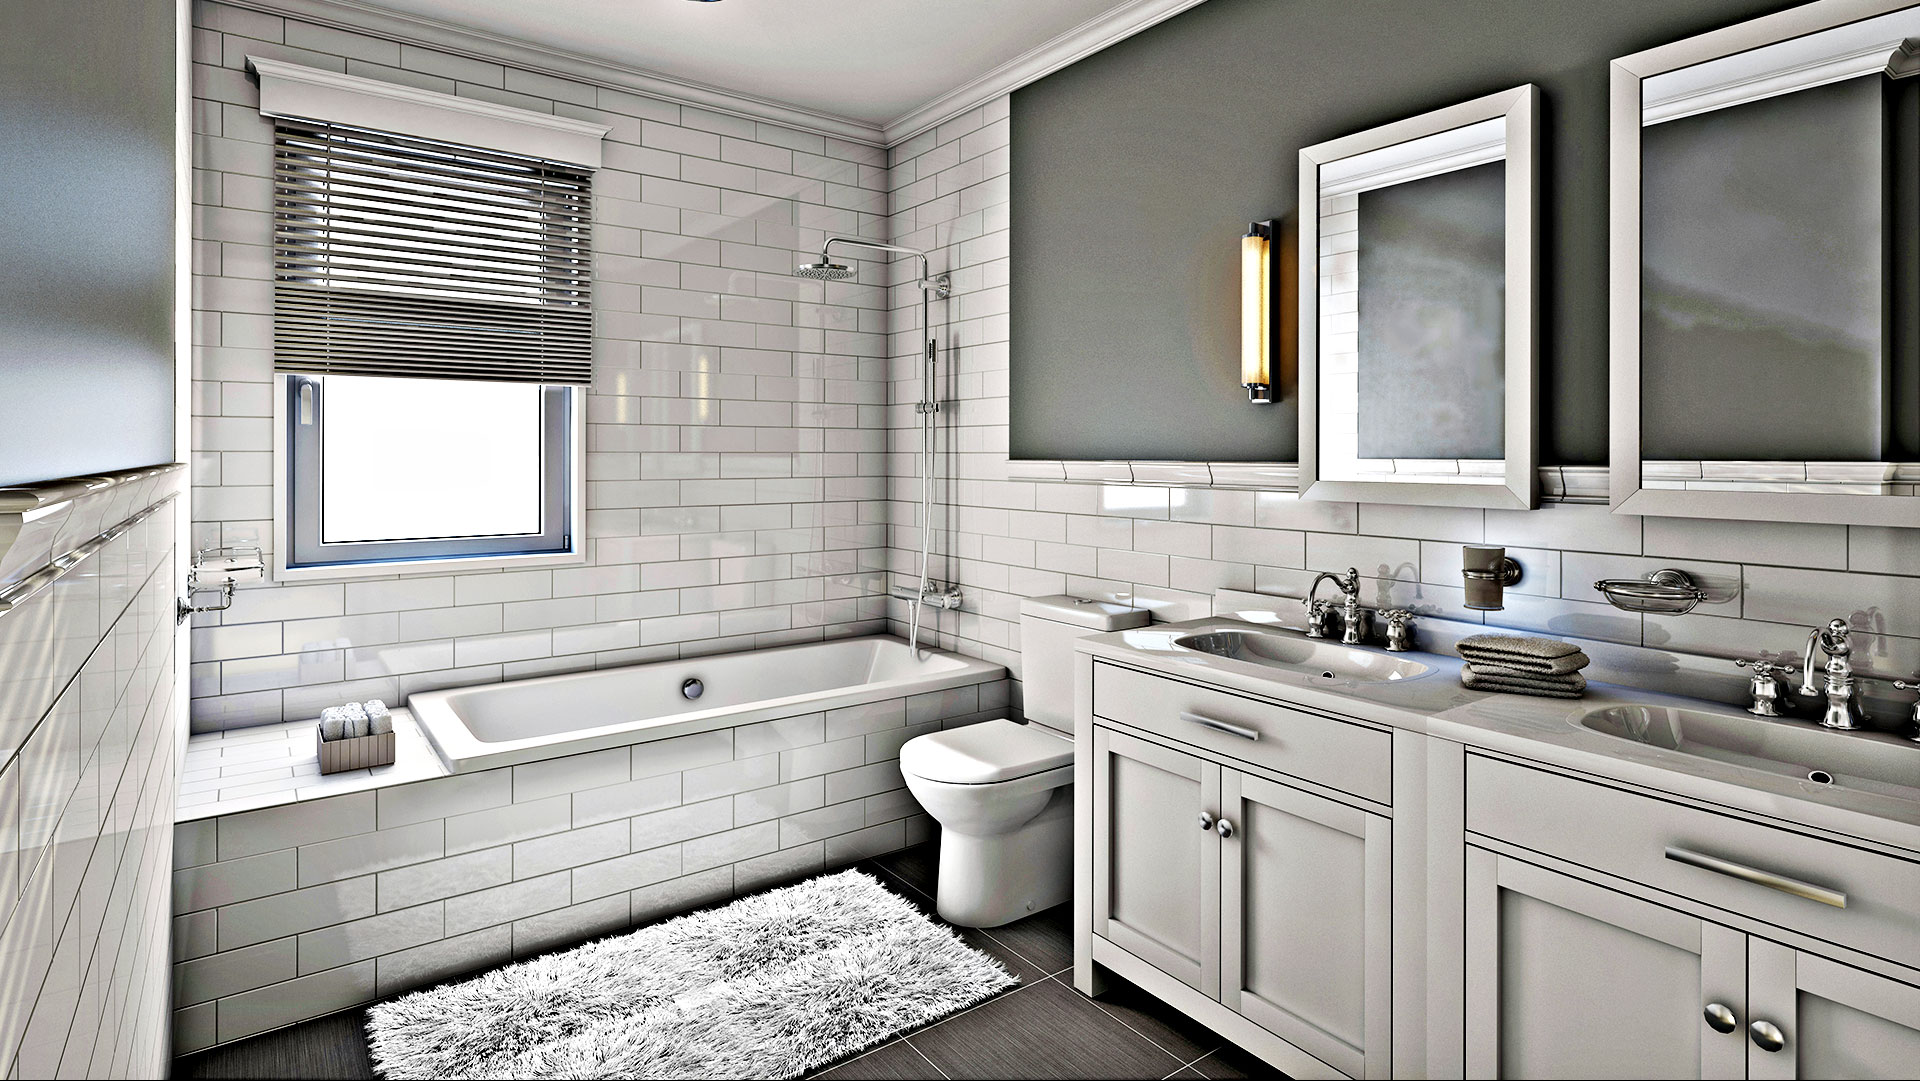 Home Bellevue Home Renovations Bathroom Renovations And